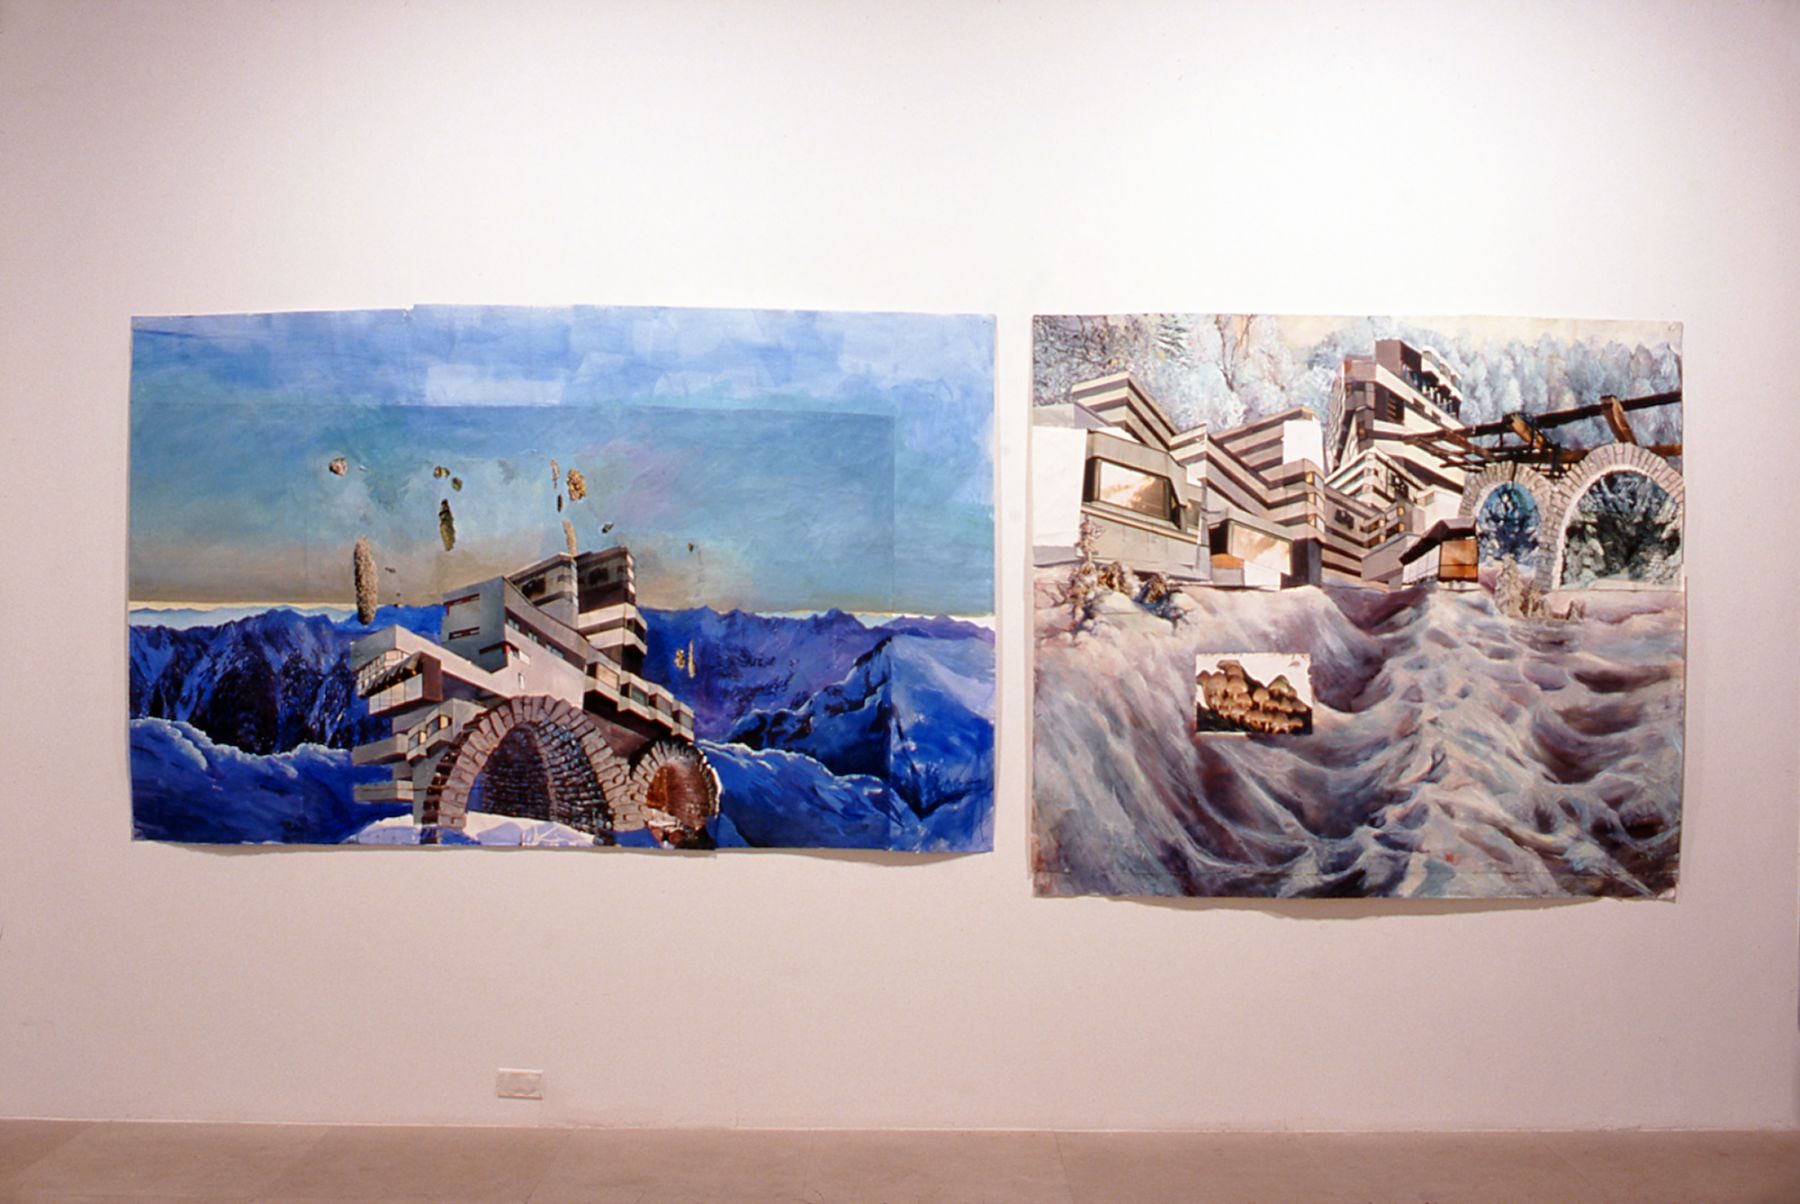 Amelie von Wulffen,  Untitled & Untitled, 1998,  Acrylic and photocollage on cardboard and paper, 55 x 78 3/4 inches, 57 86 1/2 inches